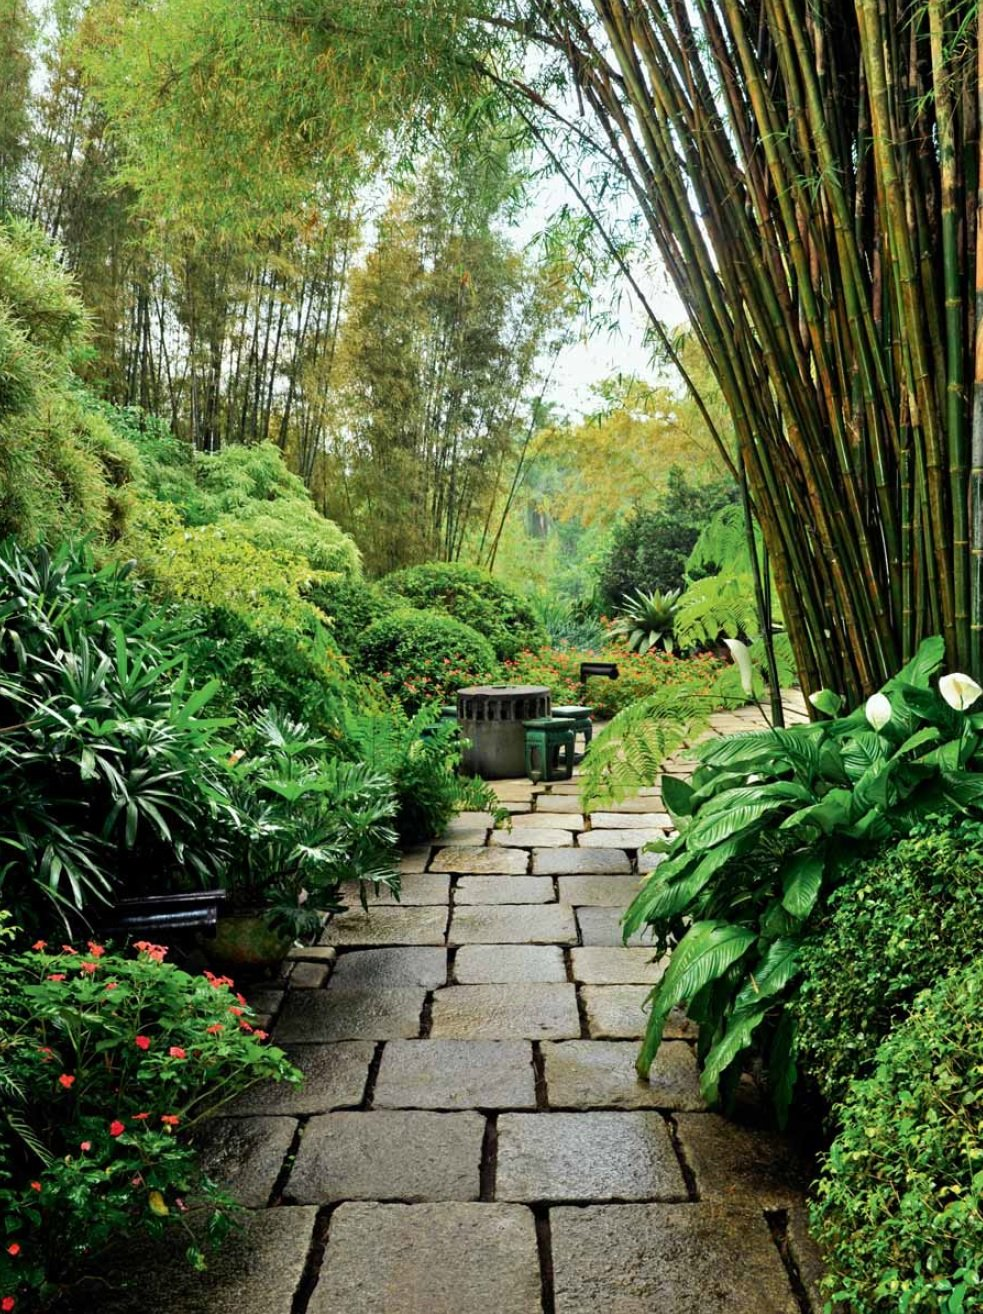 Amazon.com: Tropical Gardens: 42 Dream Gardens By Leading Landscape  Designers In The Philippines (9780804846264): Lily Gamboa Ou0027Boyle,  Elizabeth Reyes, ...